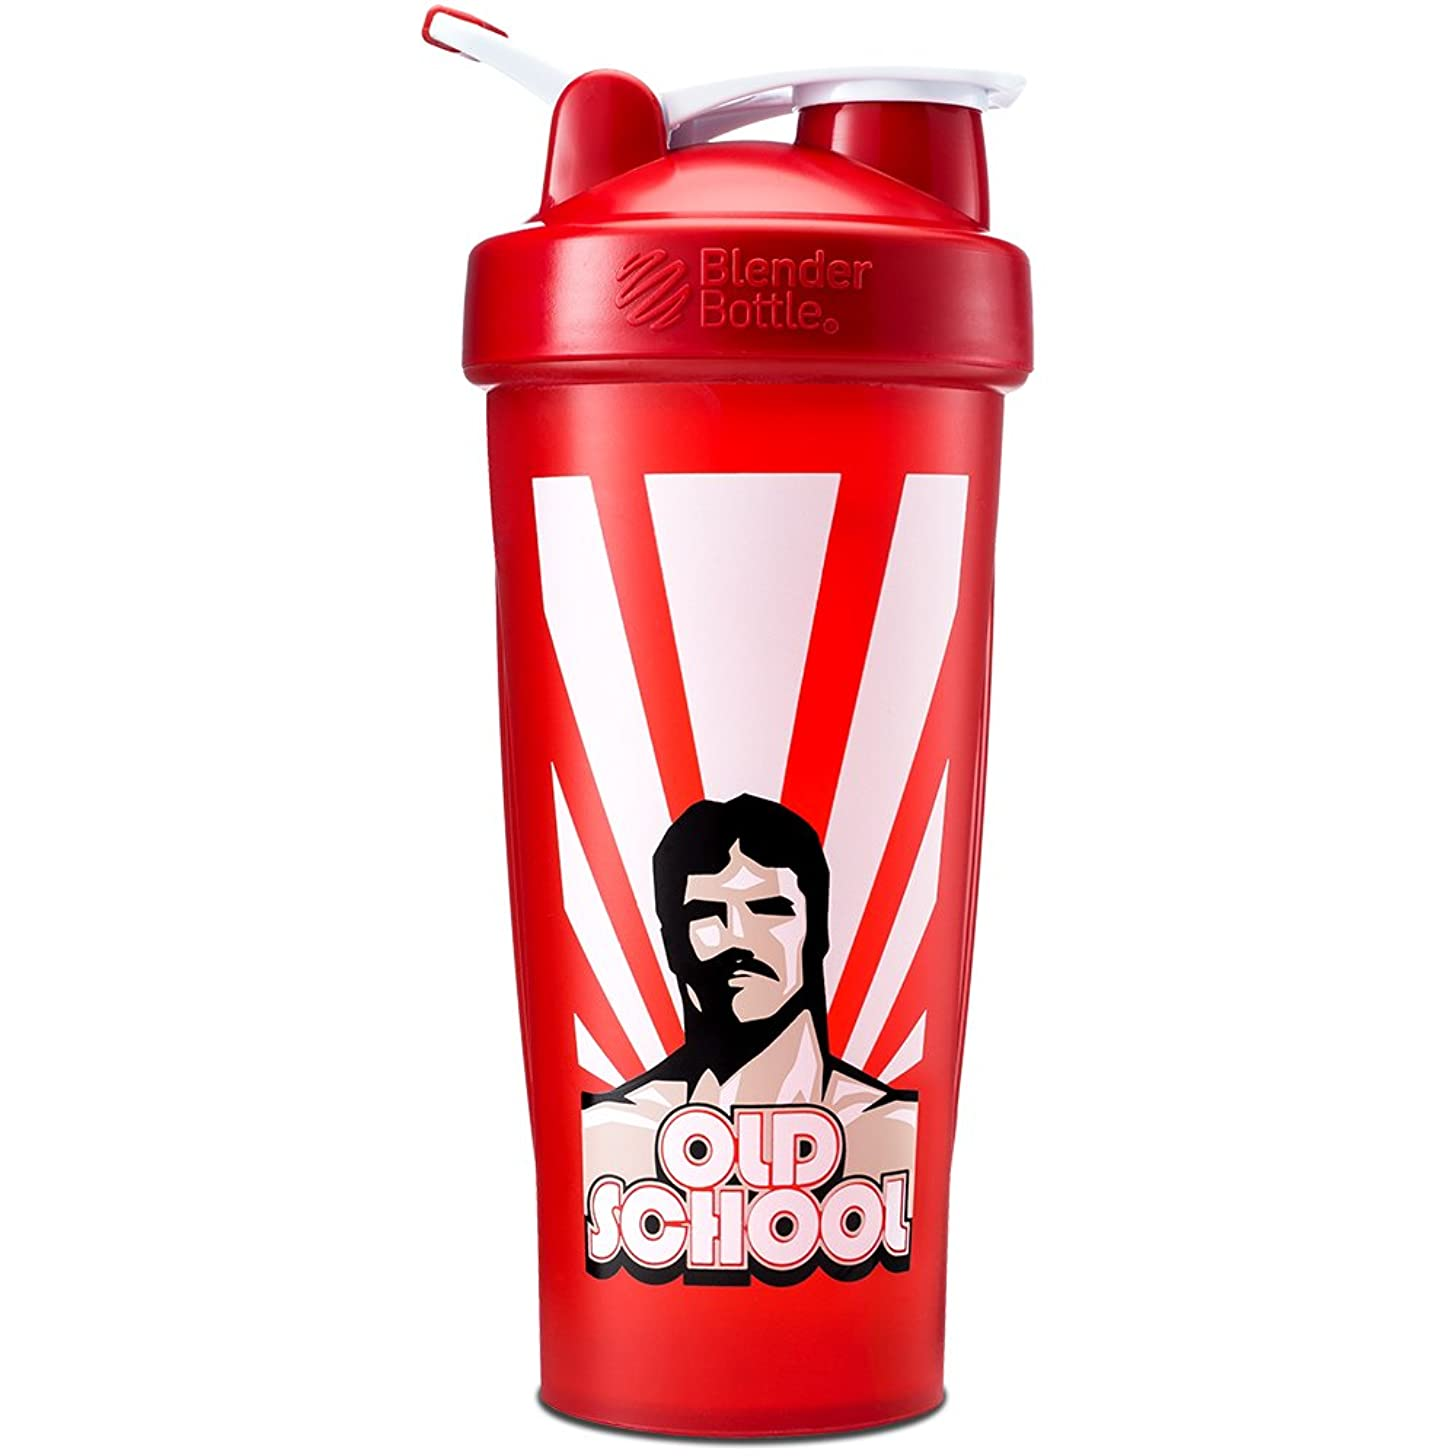 Old School Labs BlenderBottle 28oz Shaker - Silky Smooth Protein Shakes Even When the Power's Out, Prevents Embarrassing Protein Mustaches, Fights Zombies - BPA-Free - Old School Red